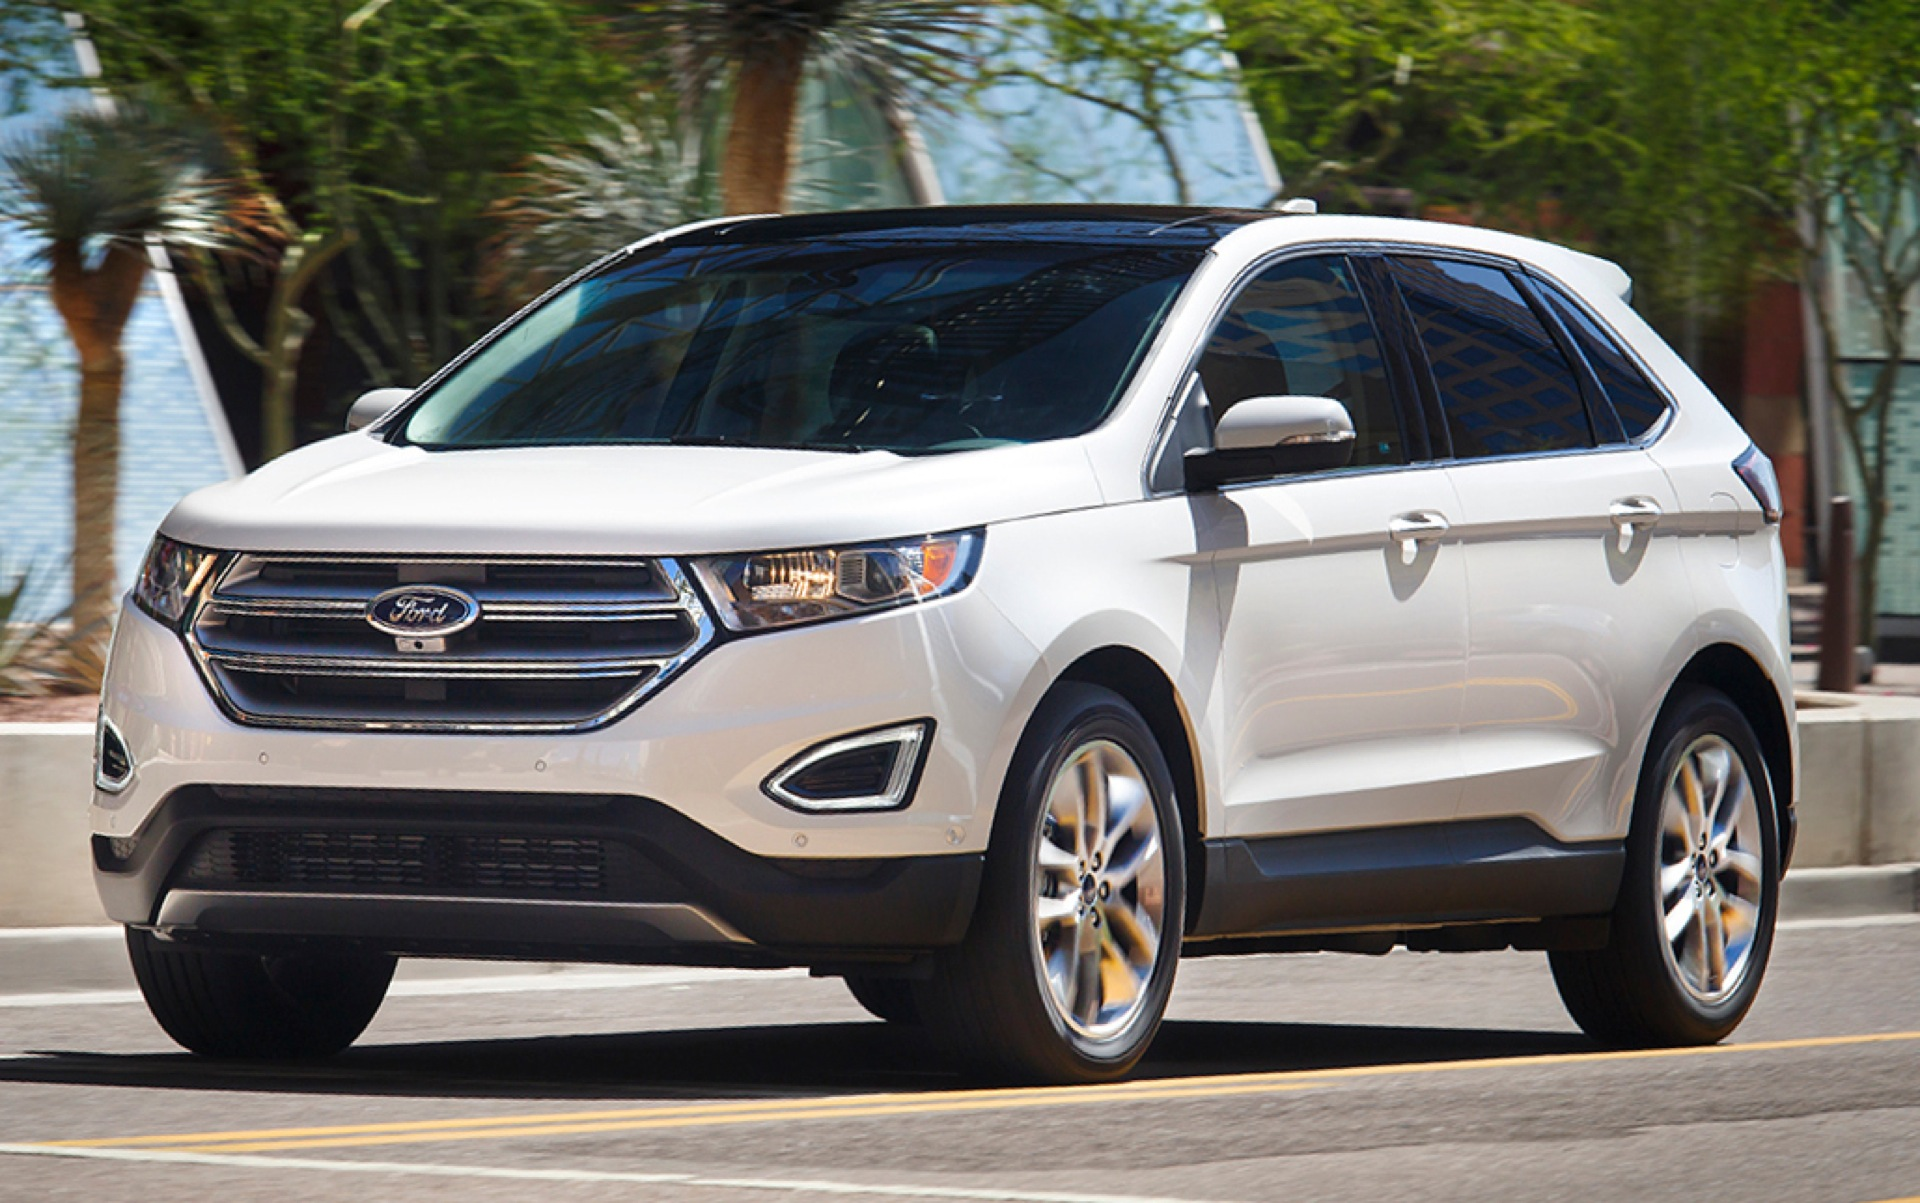 Used Dodge Fort Worth New Car Updates 2019 2020 Fuse Box Layout Of 03 Durango 4x4 4 7 2015 Ford Edge Review Ratings Specs Prices